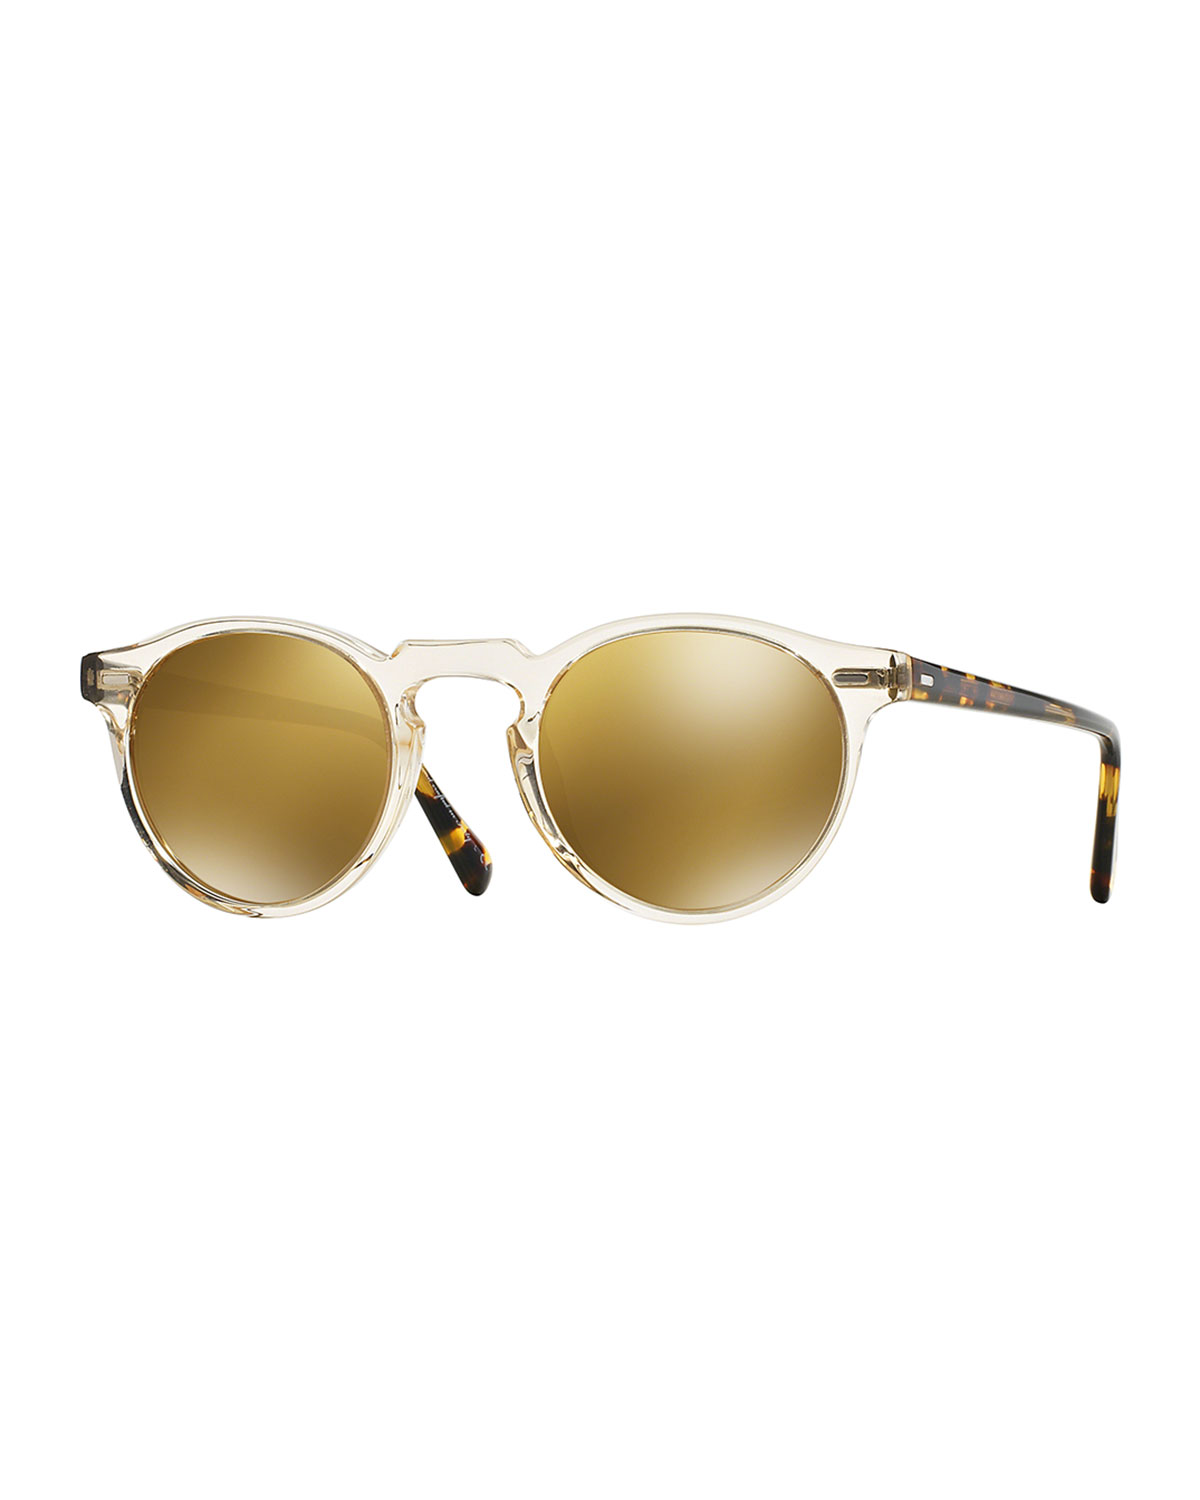 29f12412fdcd Oliver Peoples Gregory Peck 47 Round Sunglasses